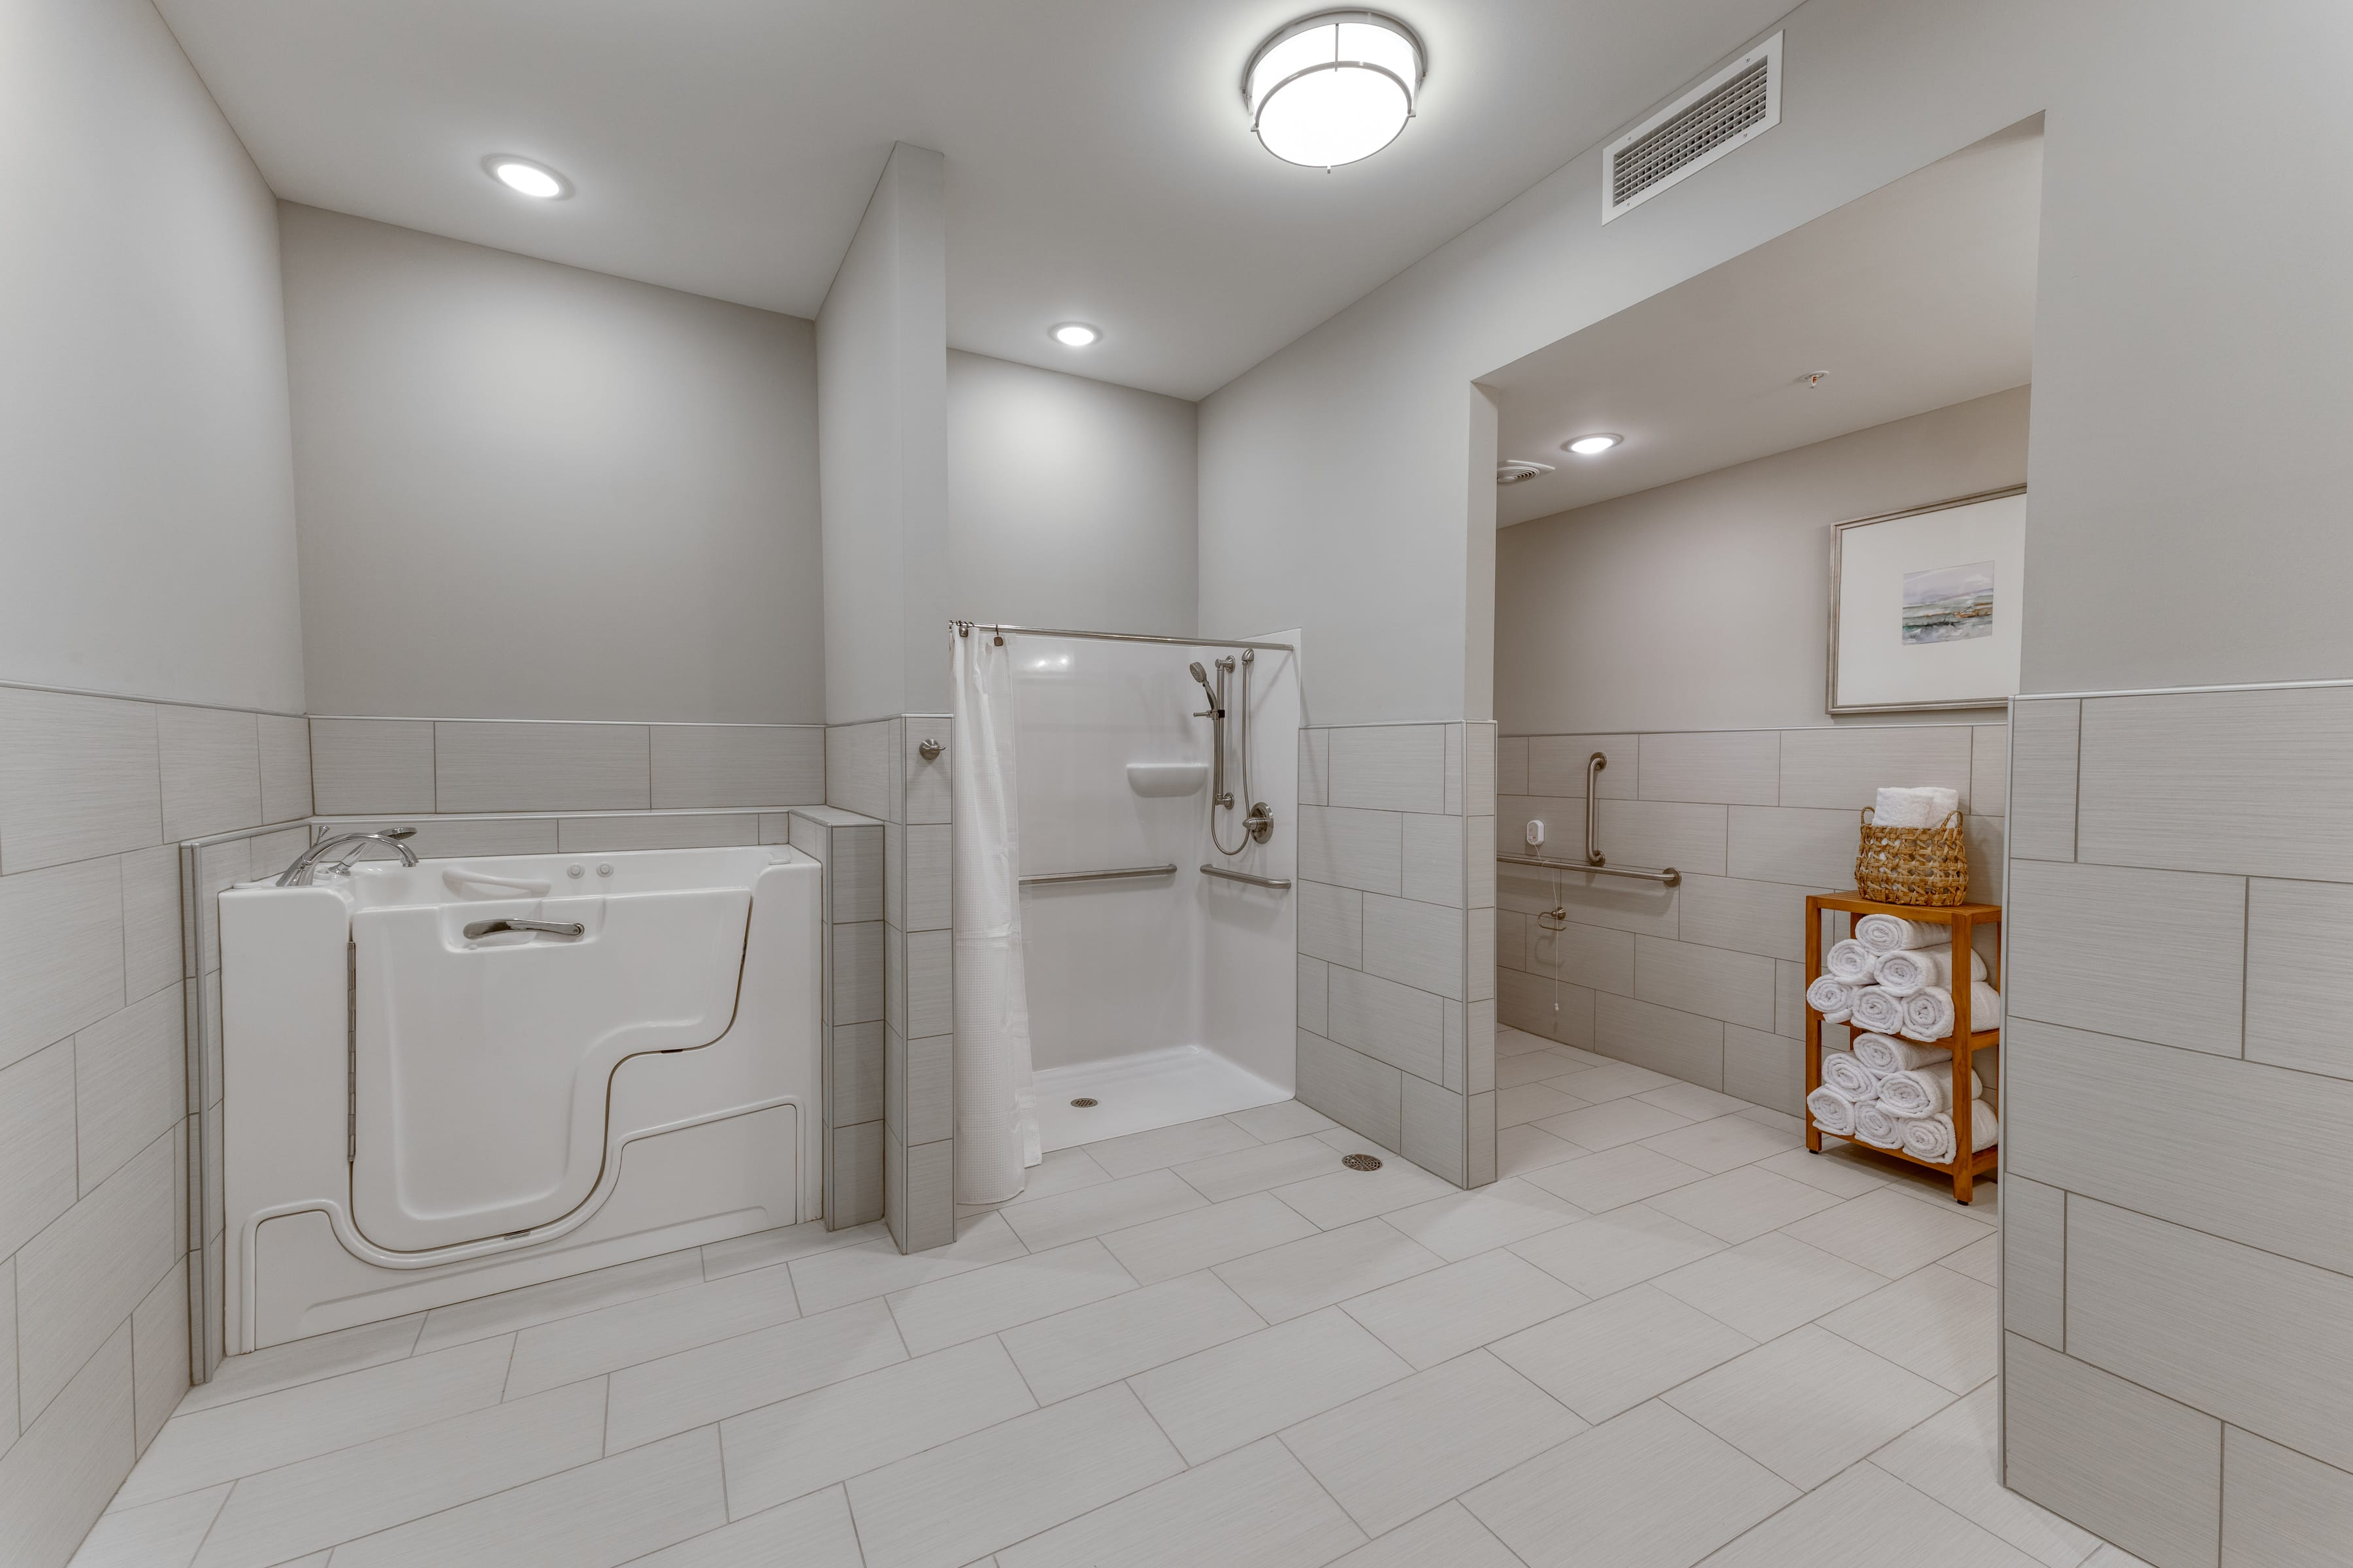 Accessible shower areas include sit-tubs and rail-equipped shower stalls